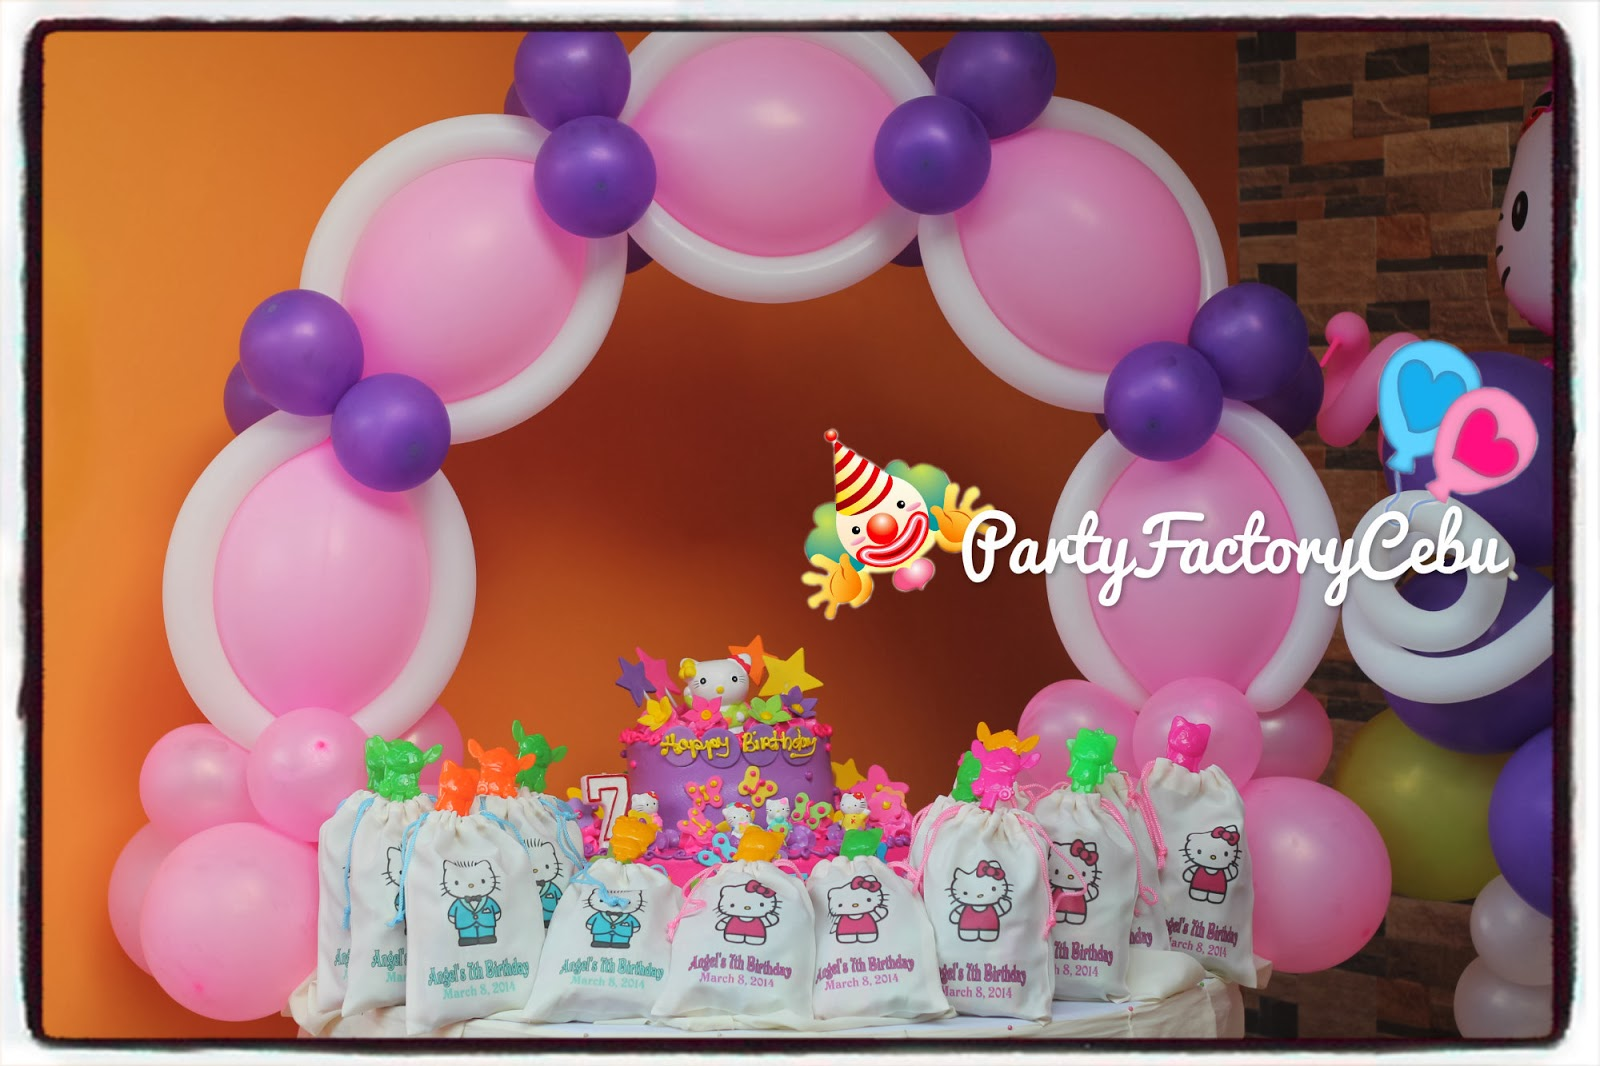 Welcome To Partyfactory Cebu March 2014